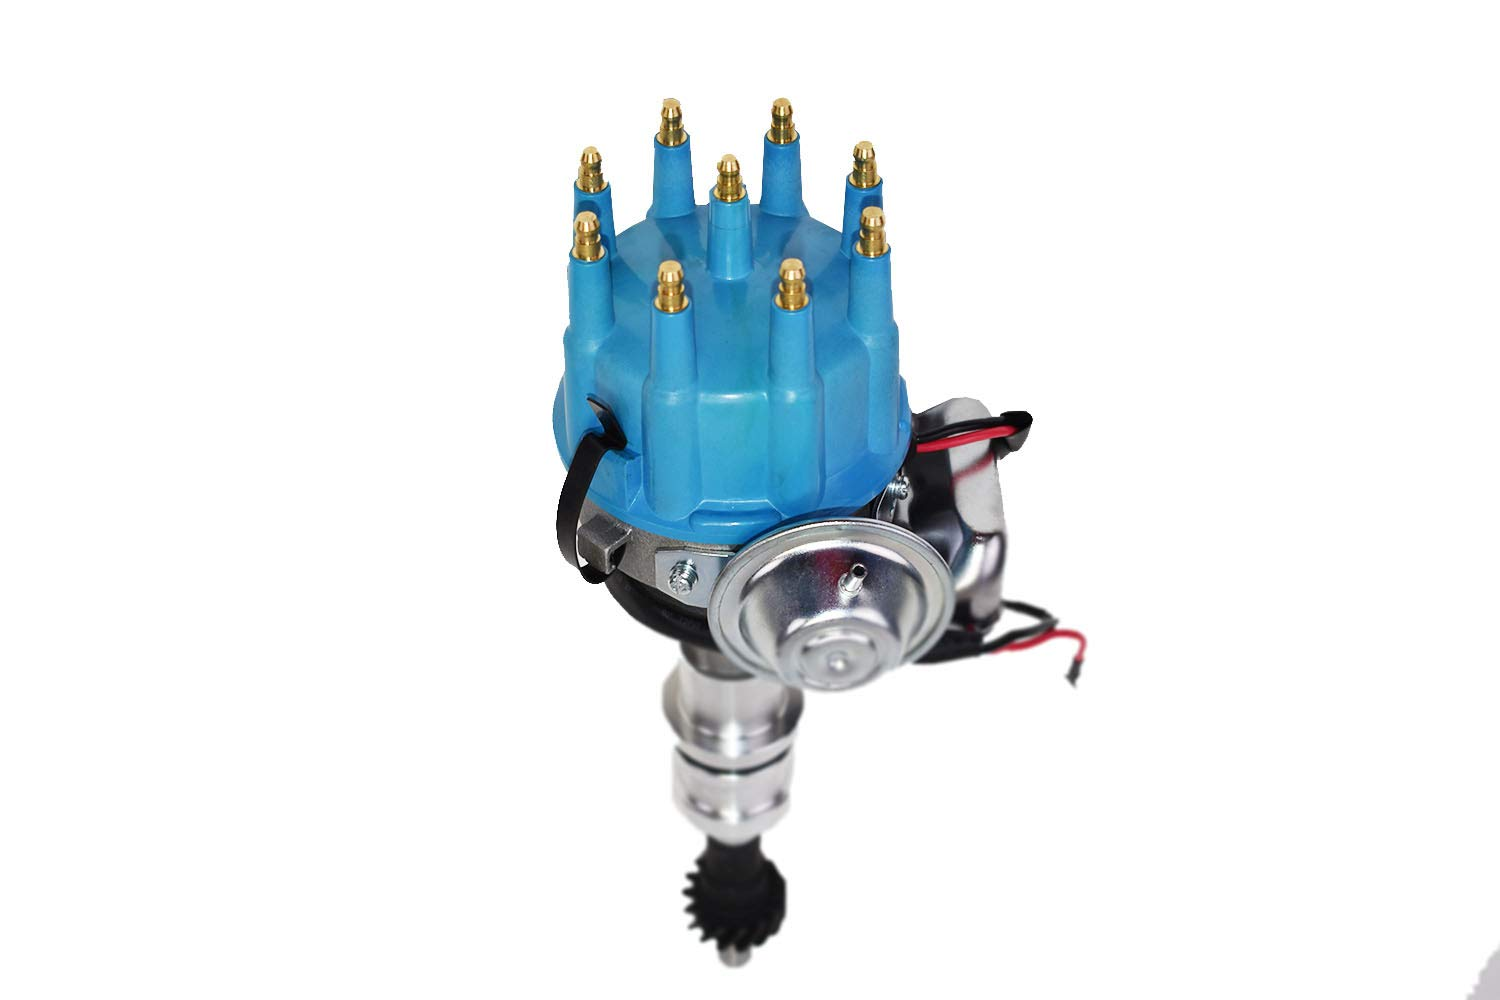 A-Team Performance R2R Ready 2 Run Complete Distributor Big Block BBF Compatible with Ford 351C 351M 400 370 429 460 Two-Wire Installation Blue Cap